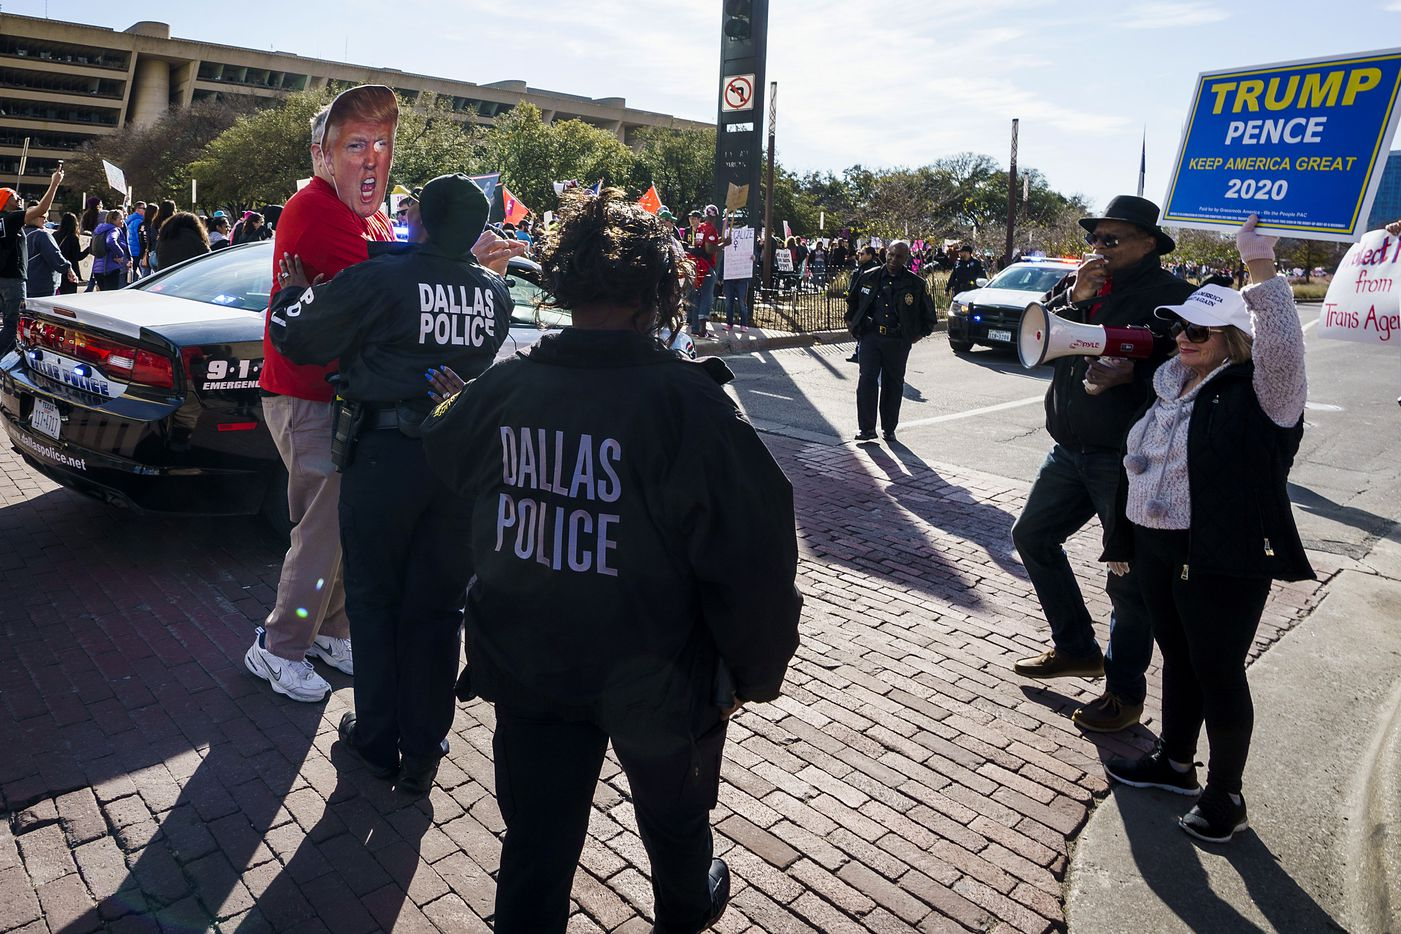 Dallas police separate a participant in the 2020 Dallas Women's March (left, wearing a Trump mask) from a group of Trump supporters (right) who were counter-protesting near Dallas City Hall on Sunday, Jan. 19, 2020, in Dallas.